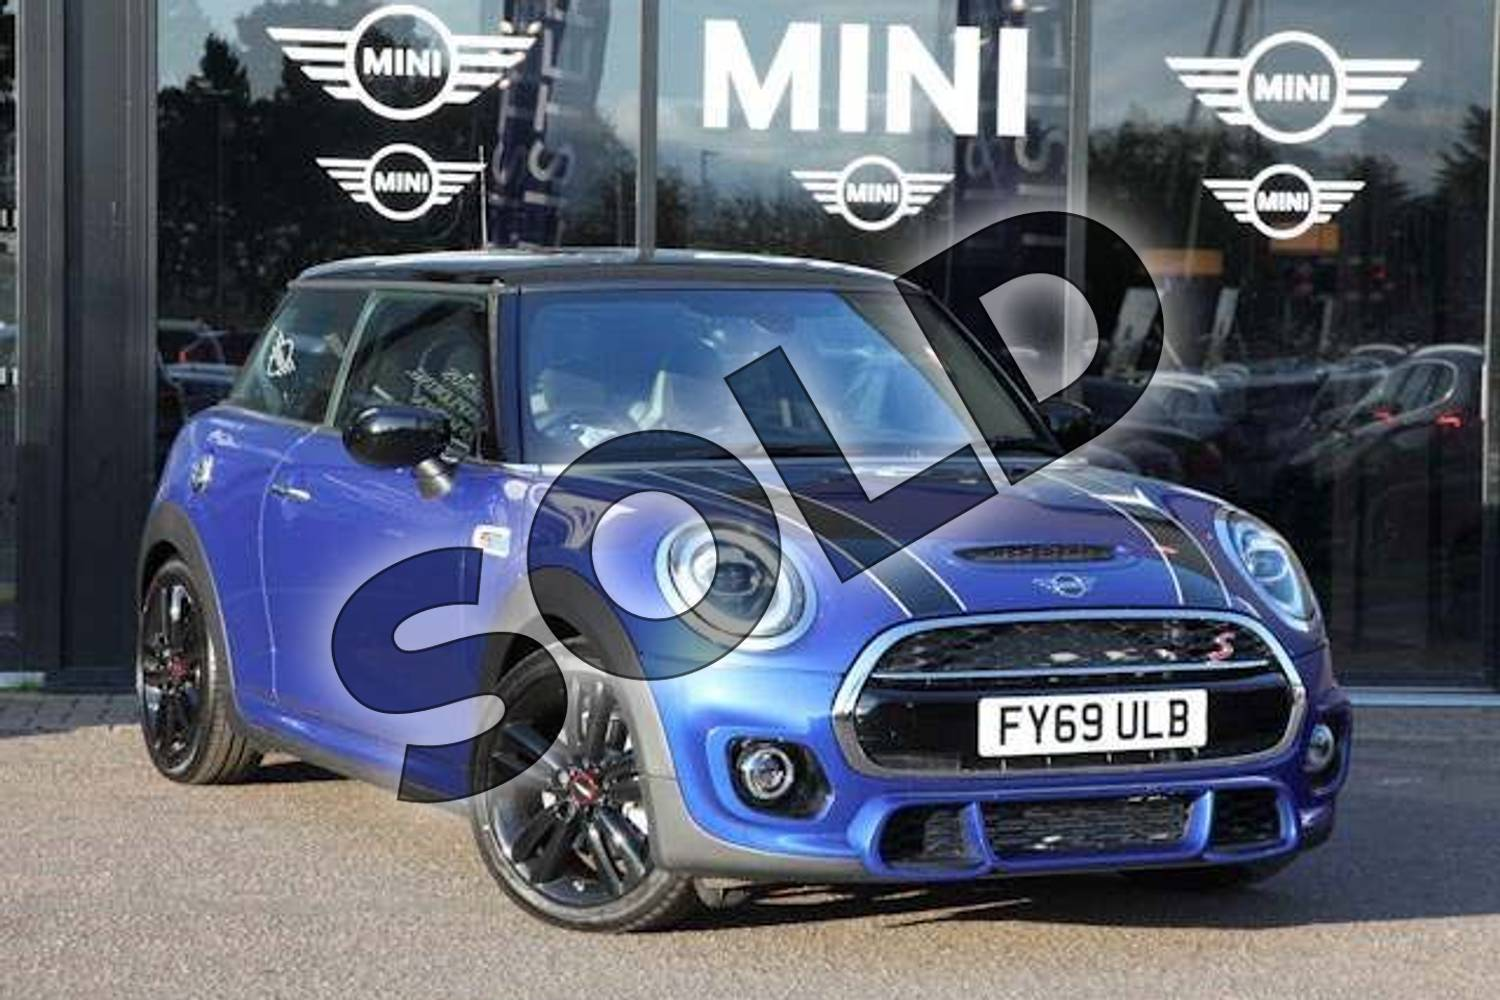 Mini Hatchback 2 0 Cooper S Sport Ii 3dr Auto Starlight Blue With Dinamica Leather Recaro Sport Seats Interior